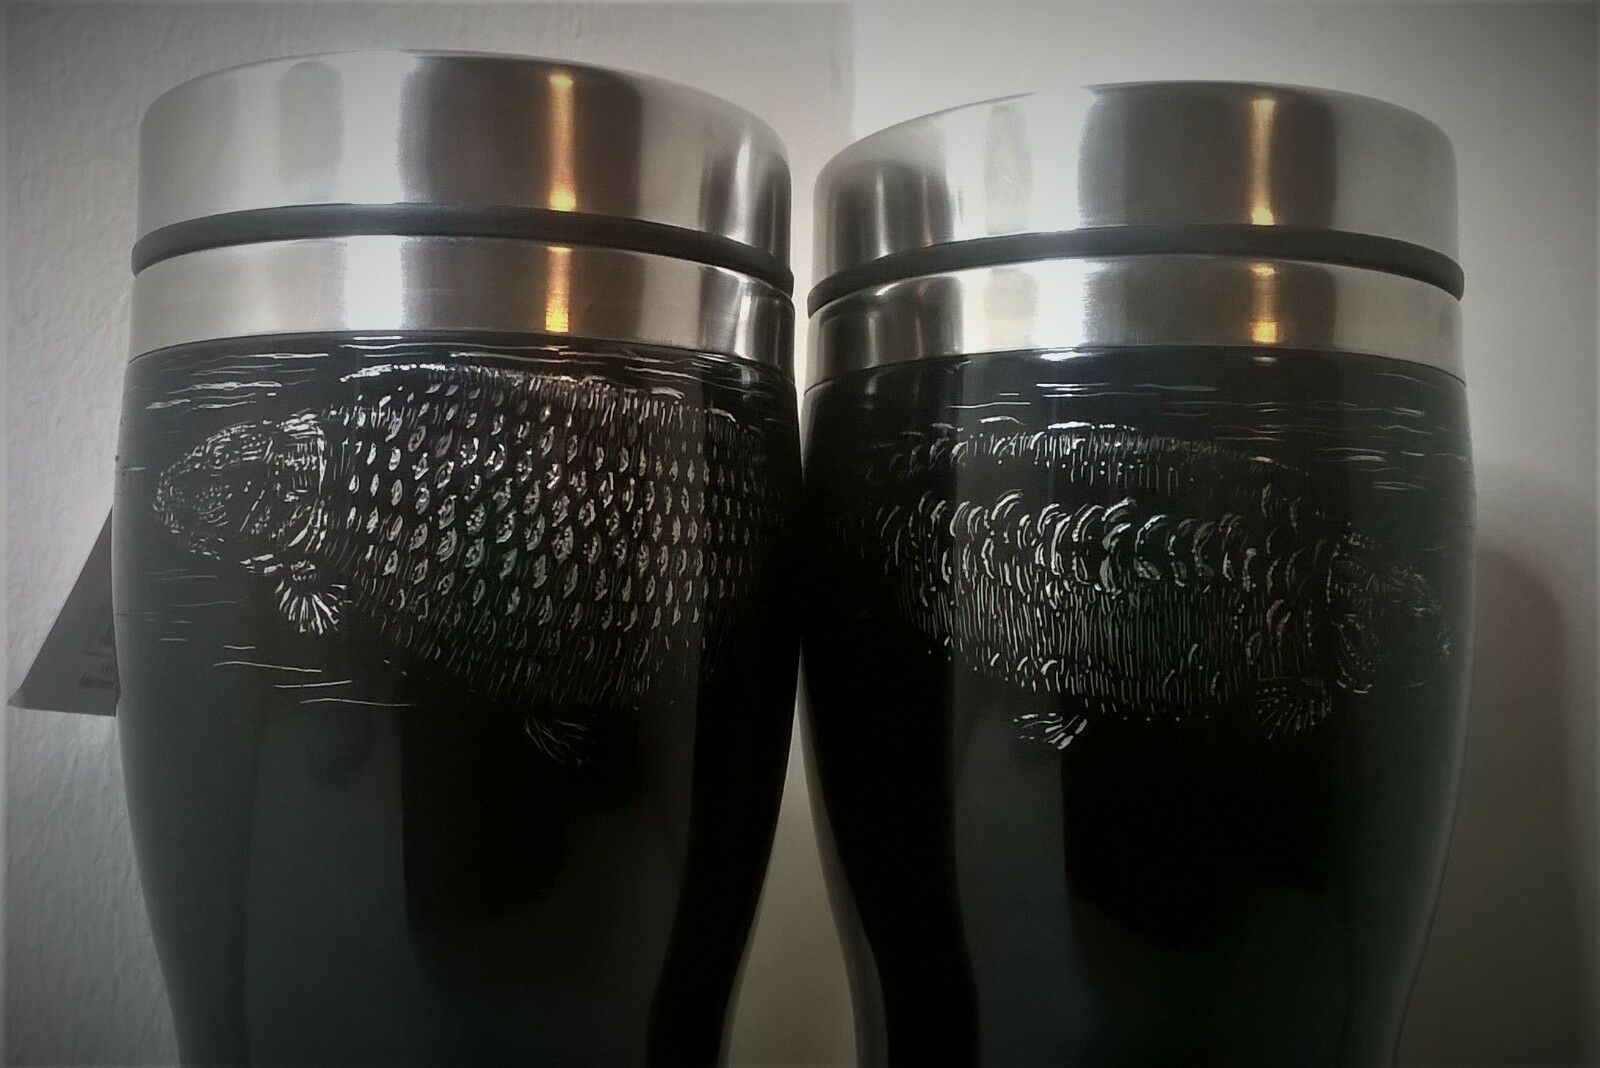 Carpy Kettles Insulated mugs hand engraved with a choice of beautiful designs